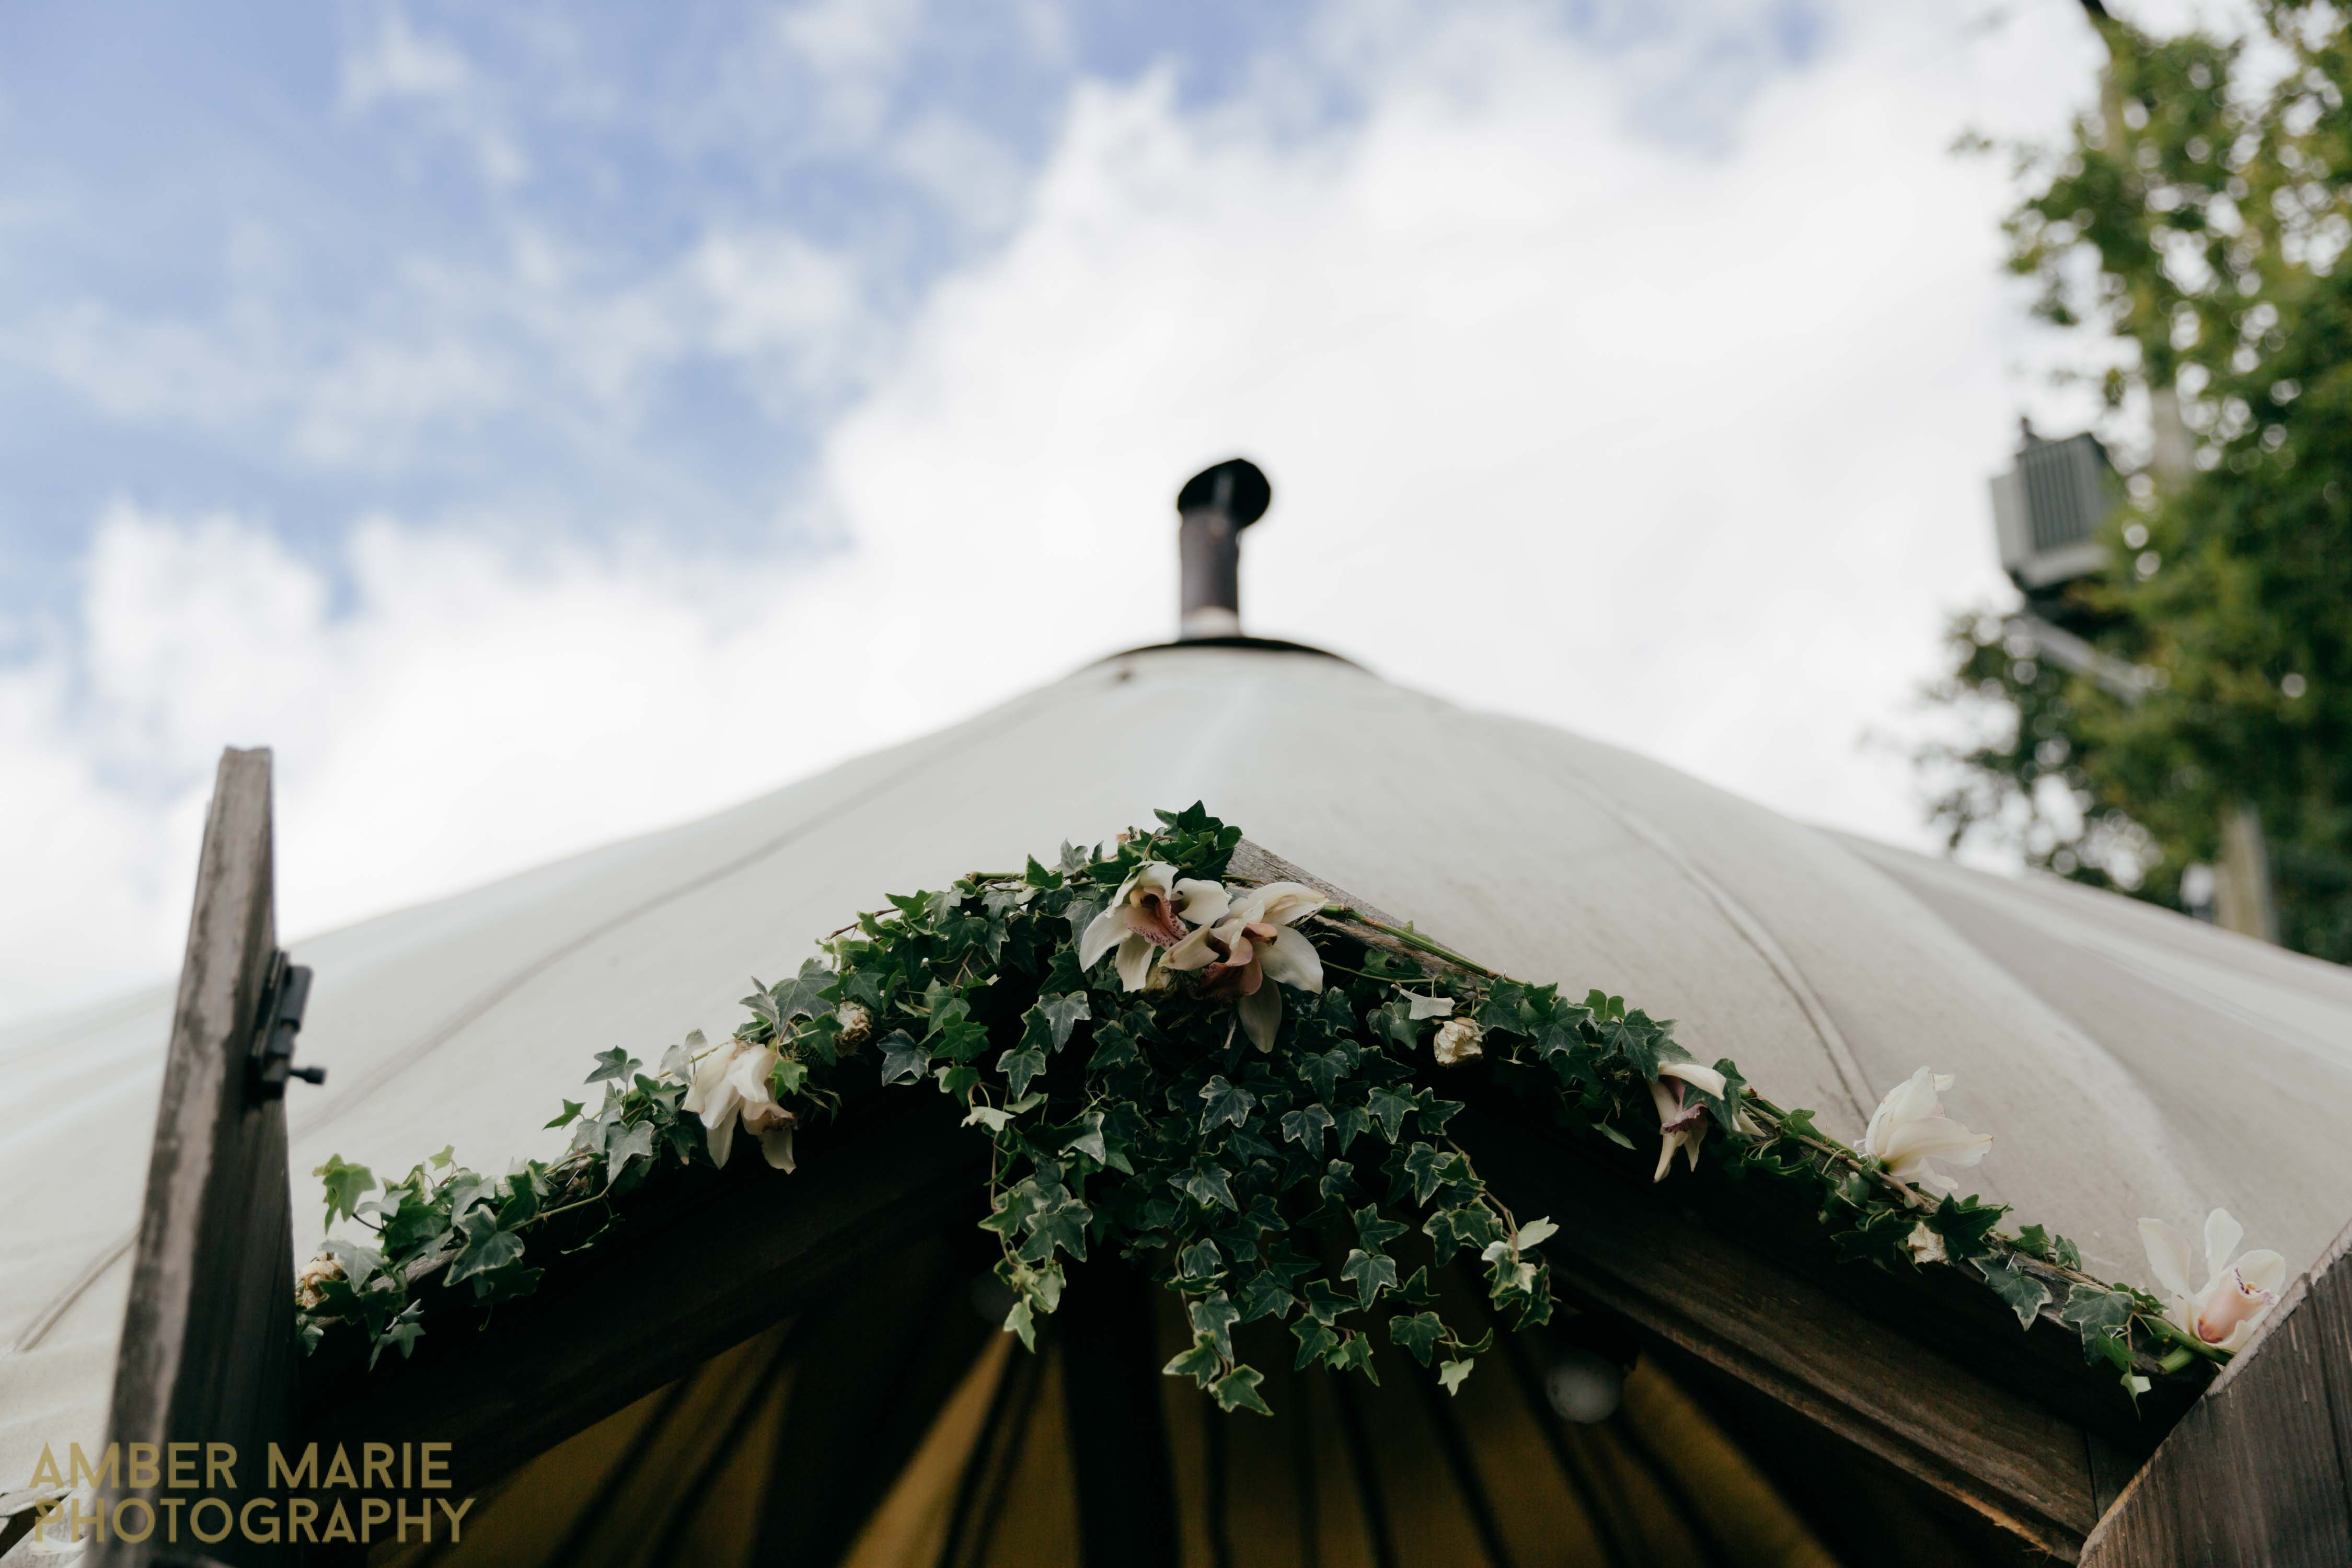 river-cottage-wedding-photography-creative-yorkshire-wedding-photographers-amber-marie-photography00-46